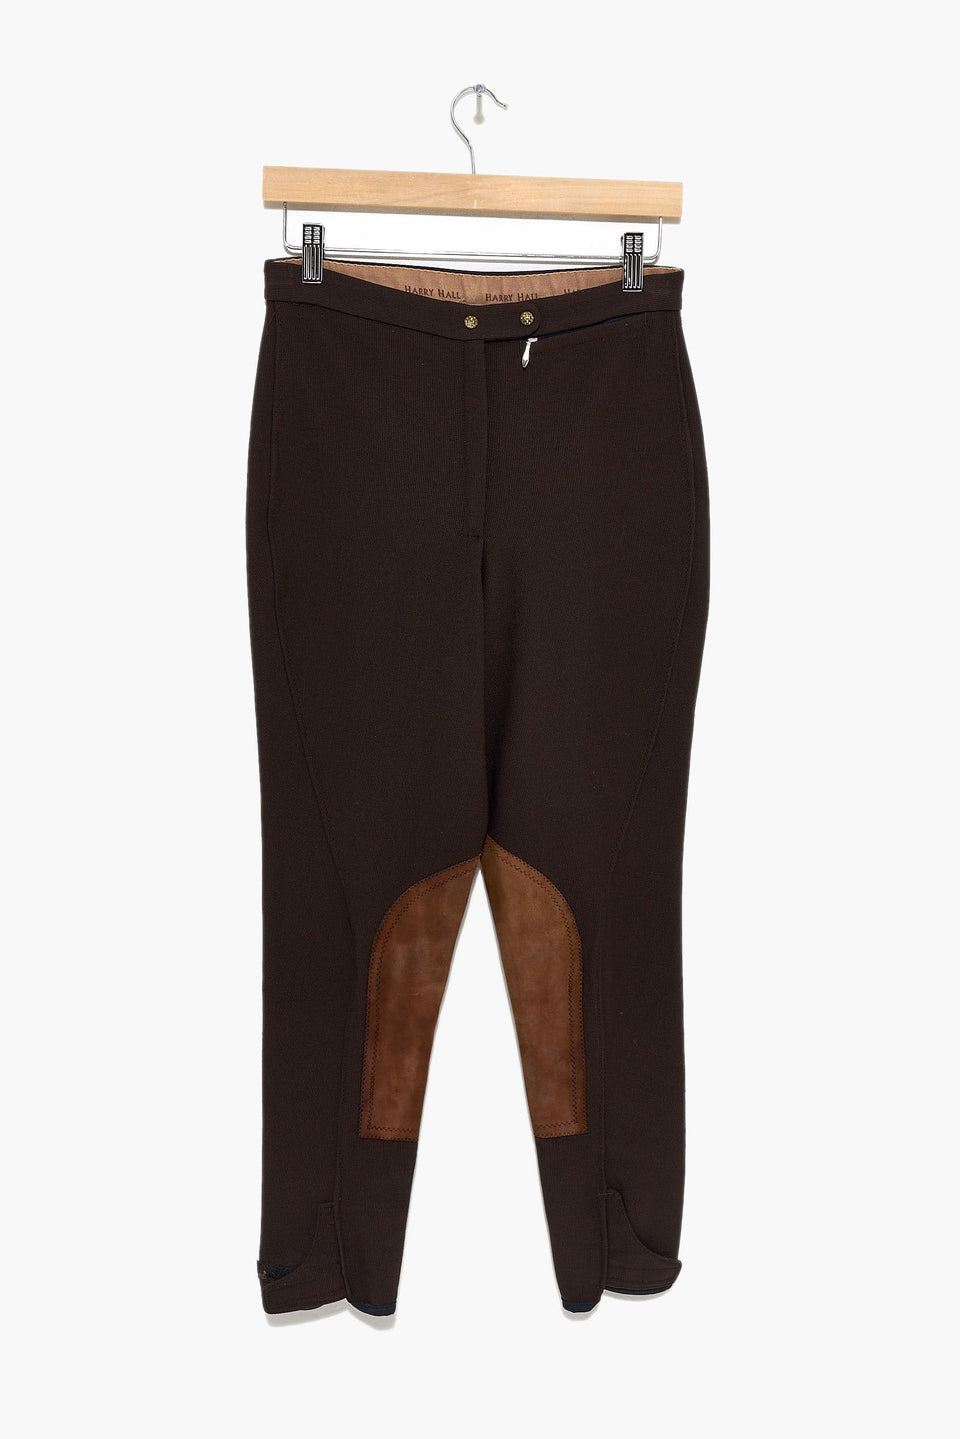 Harry Hall Trousers